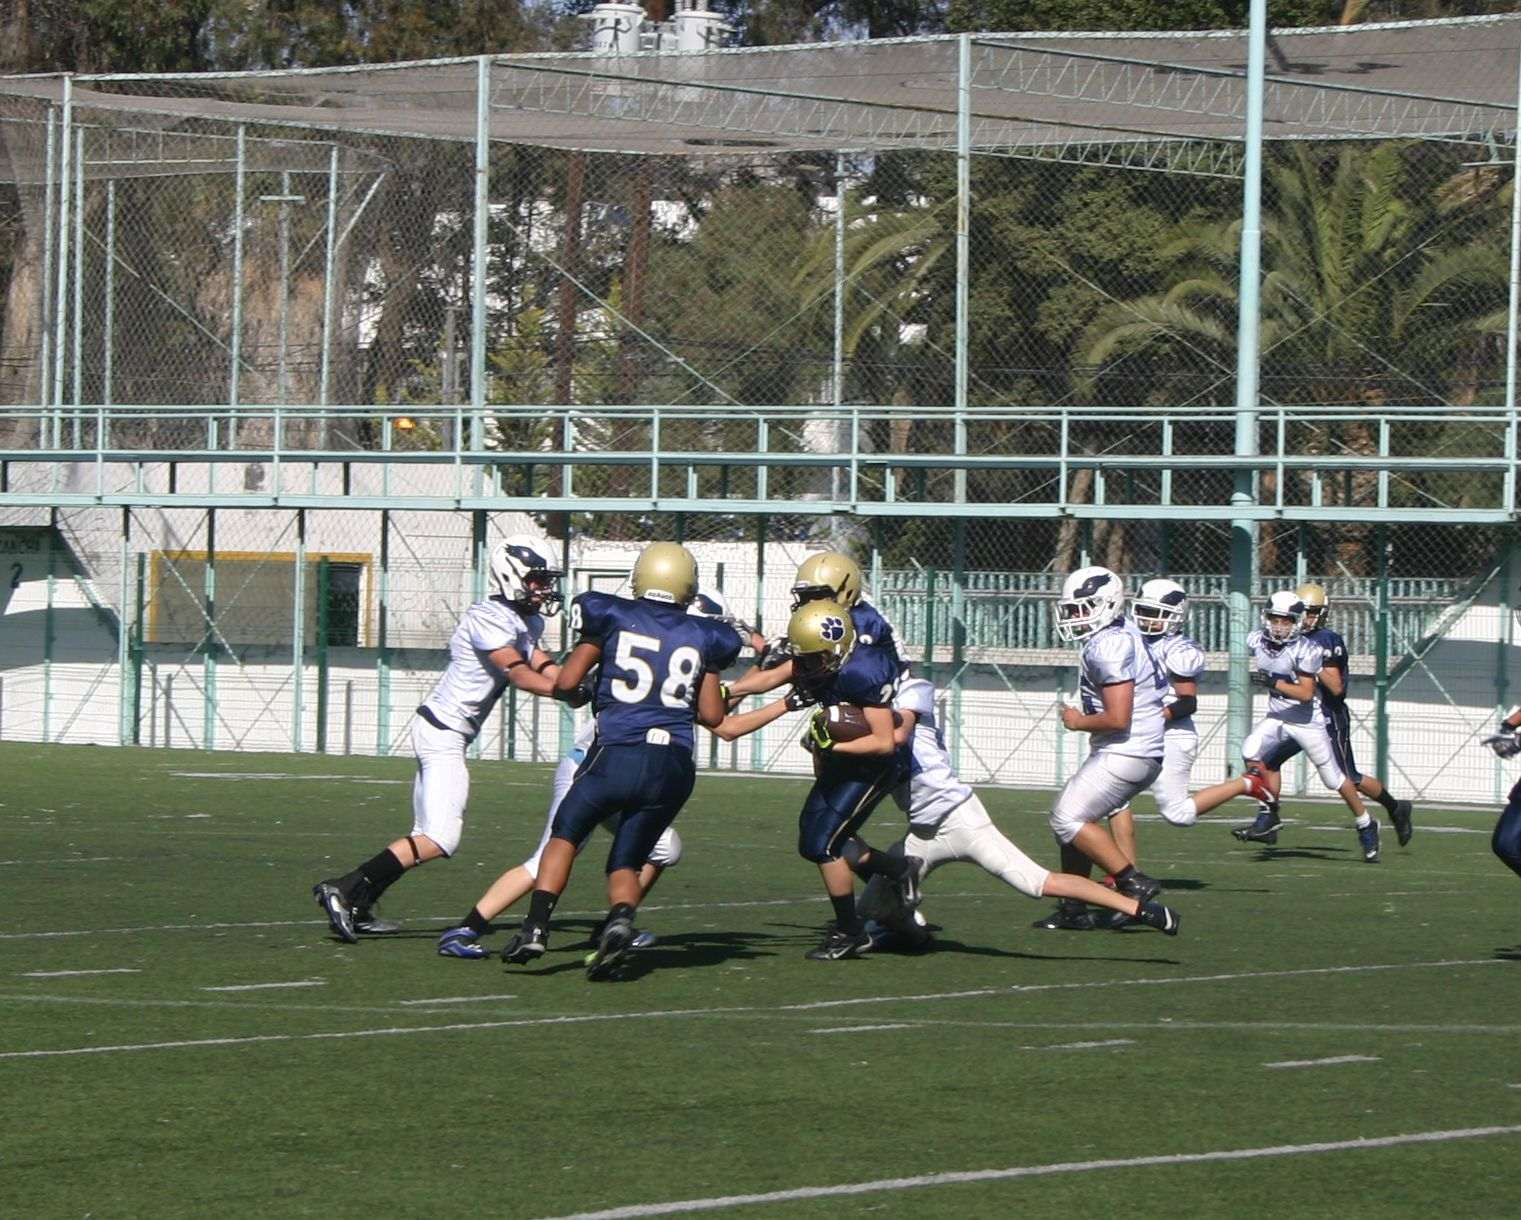 Águilas vs. Jaguares - Infantil Mayor (15-Mar-14) BI